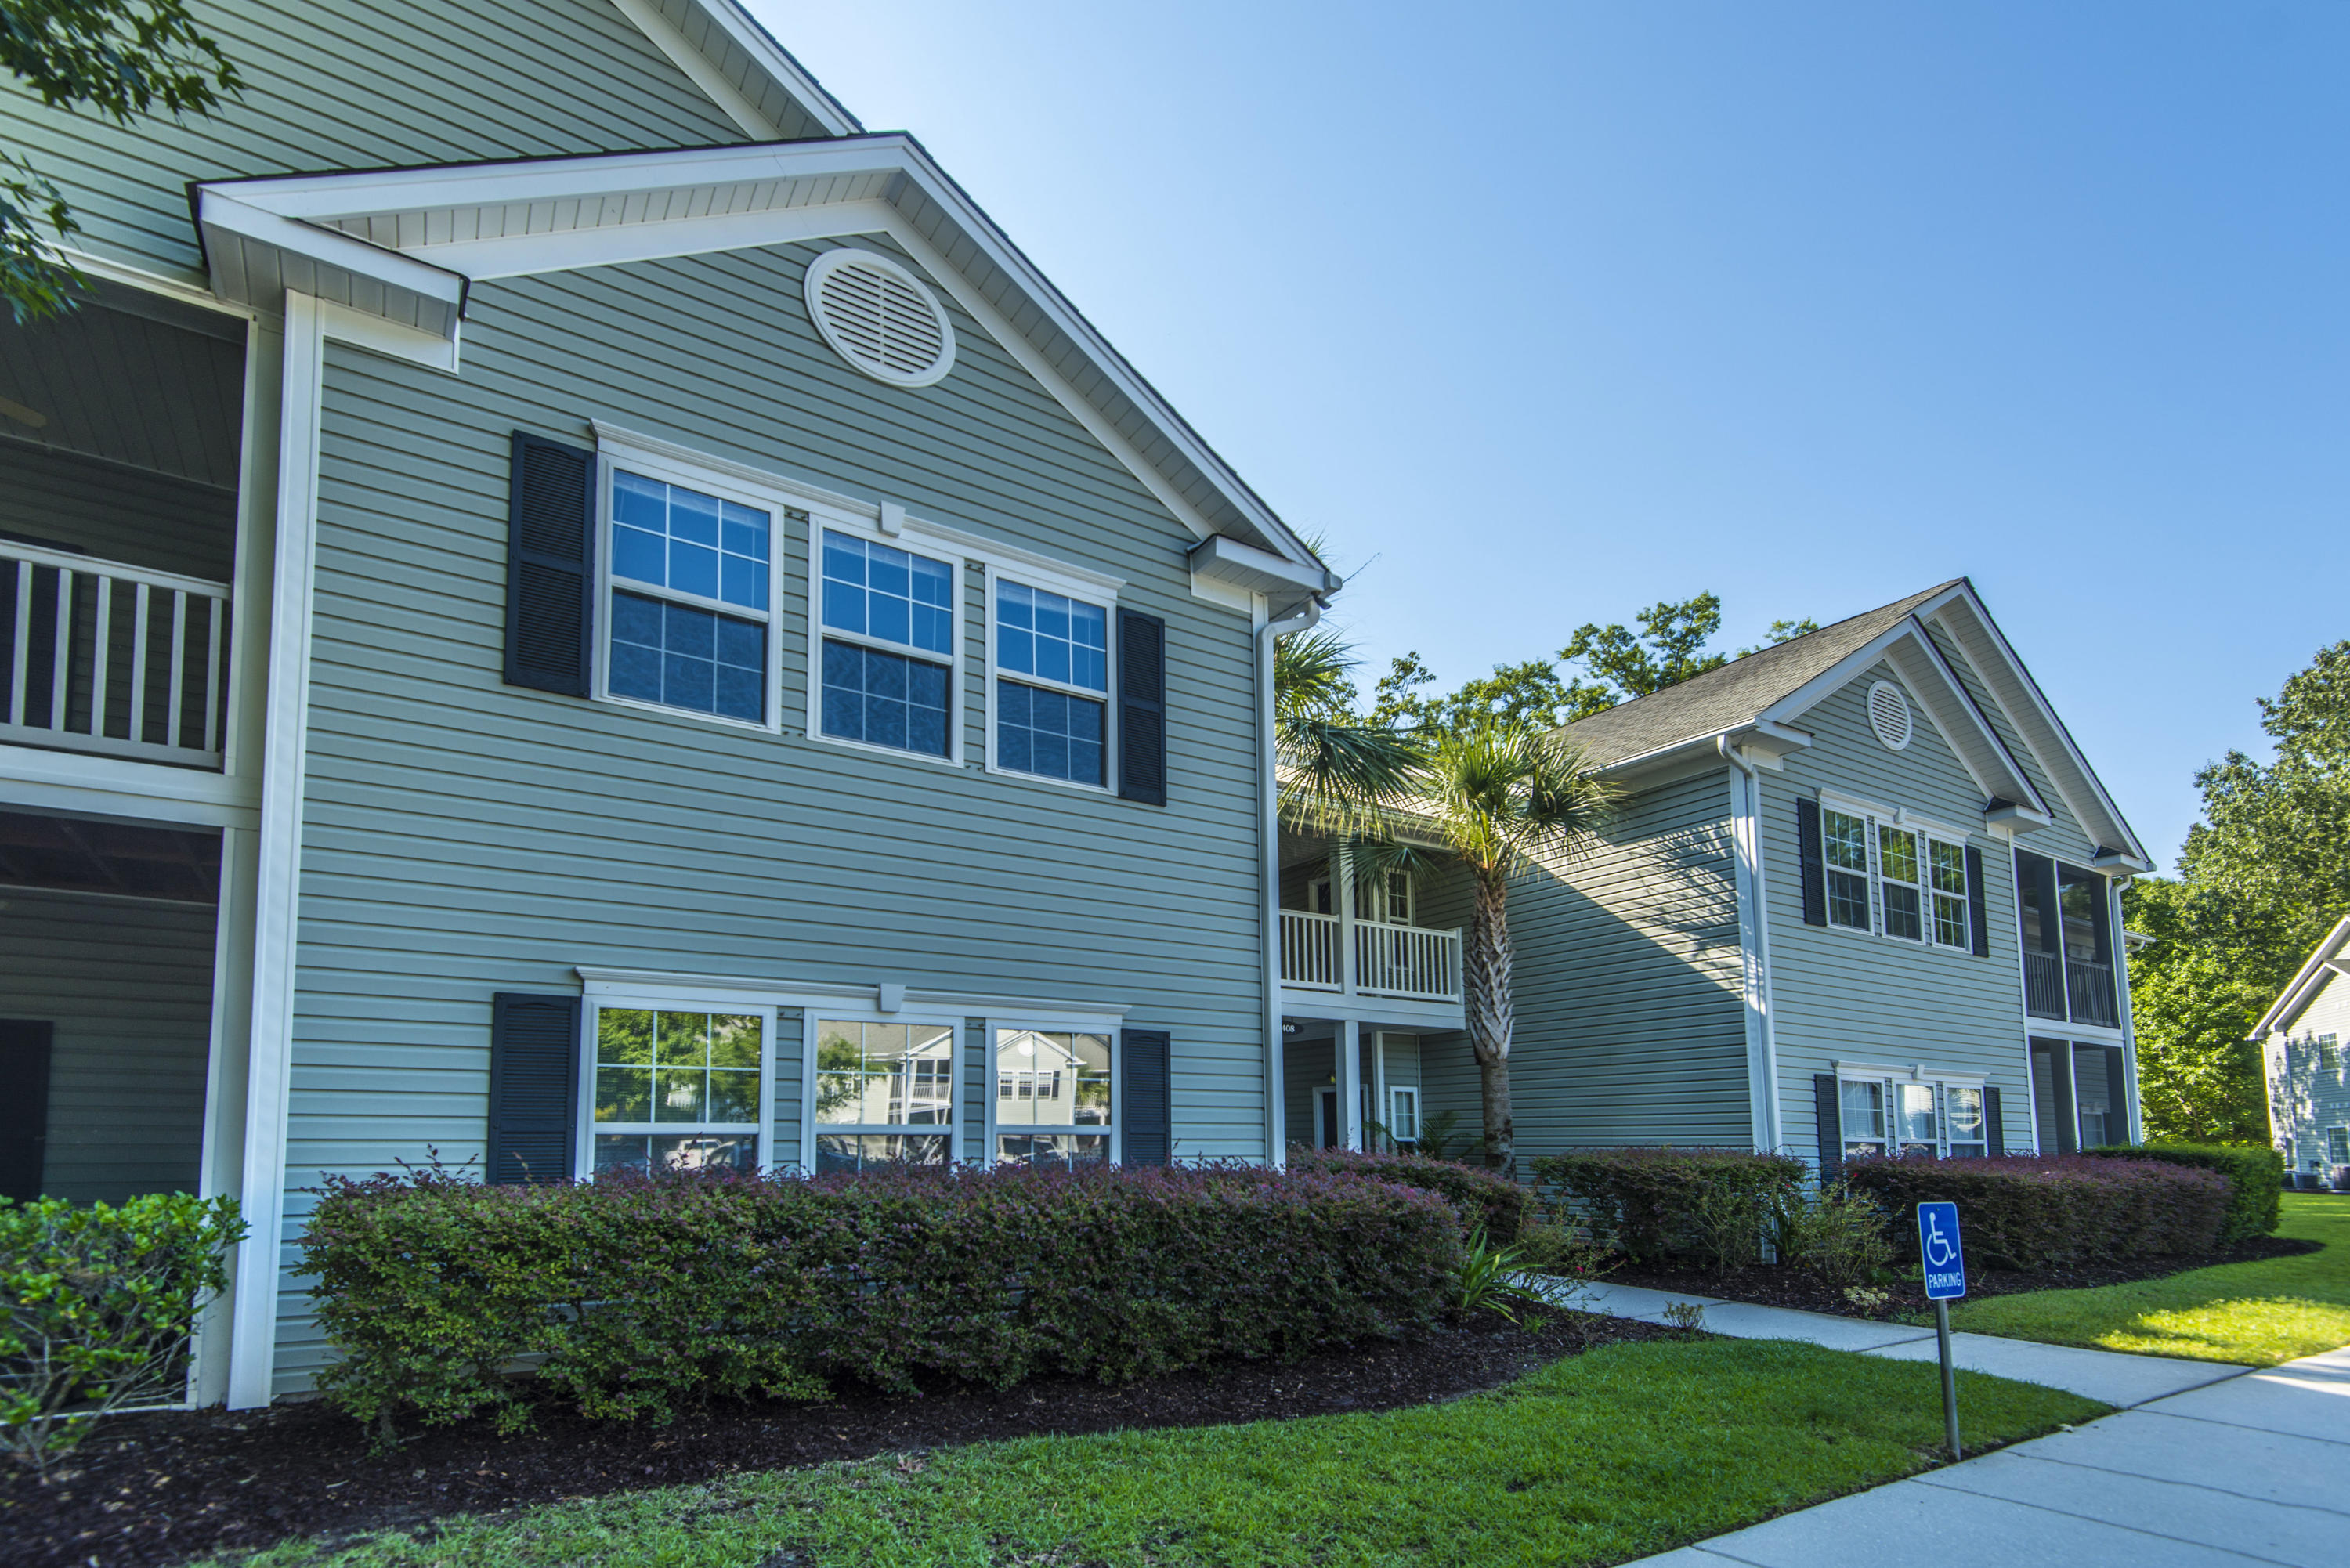 406 S #406 Elgin Court Charleston, Sc 29414